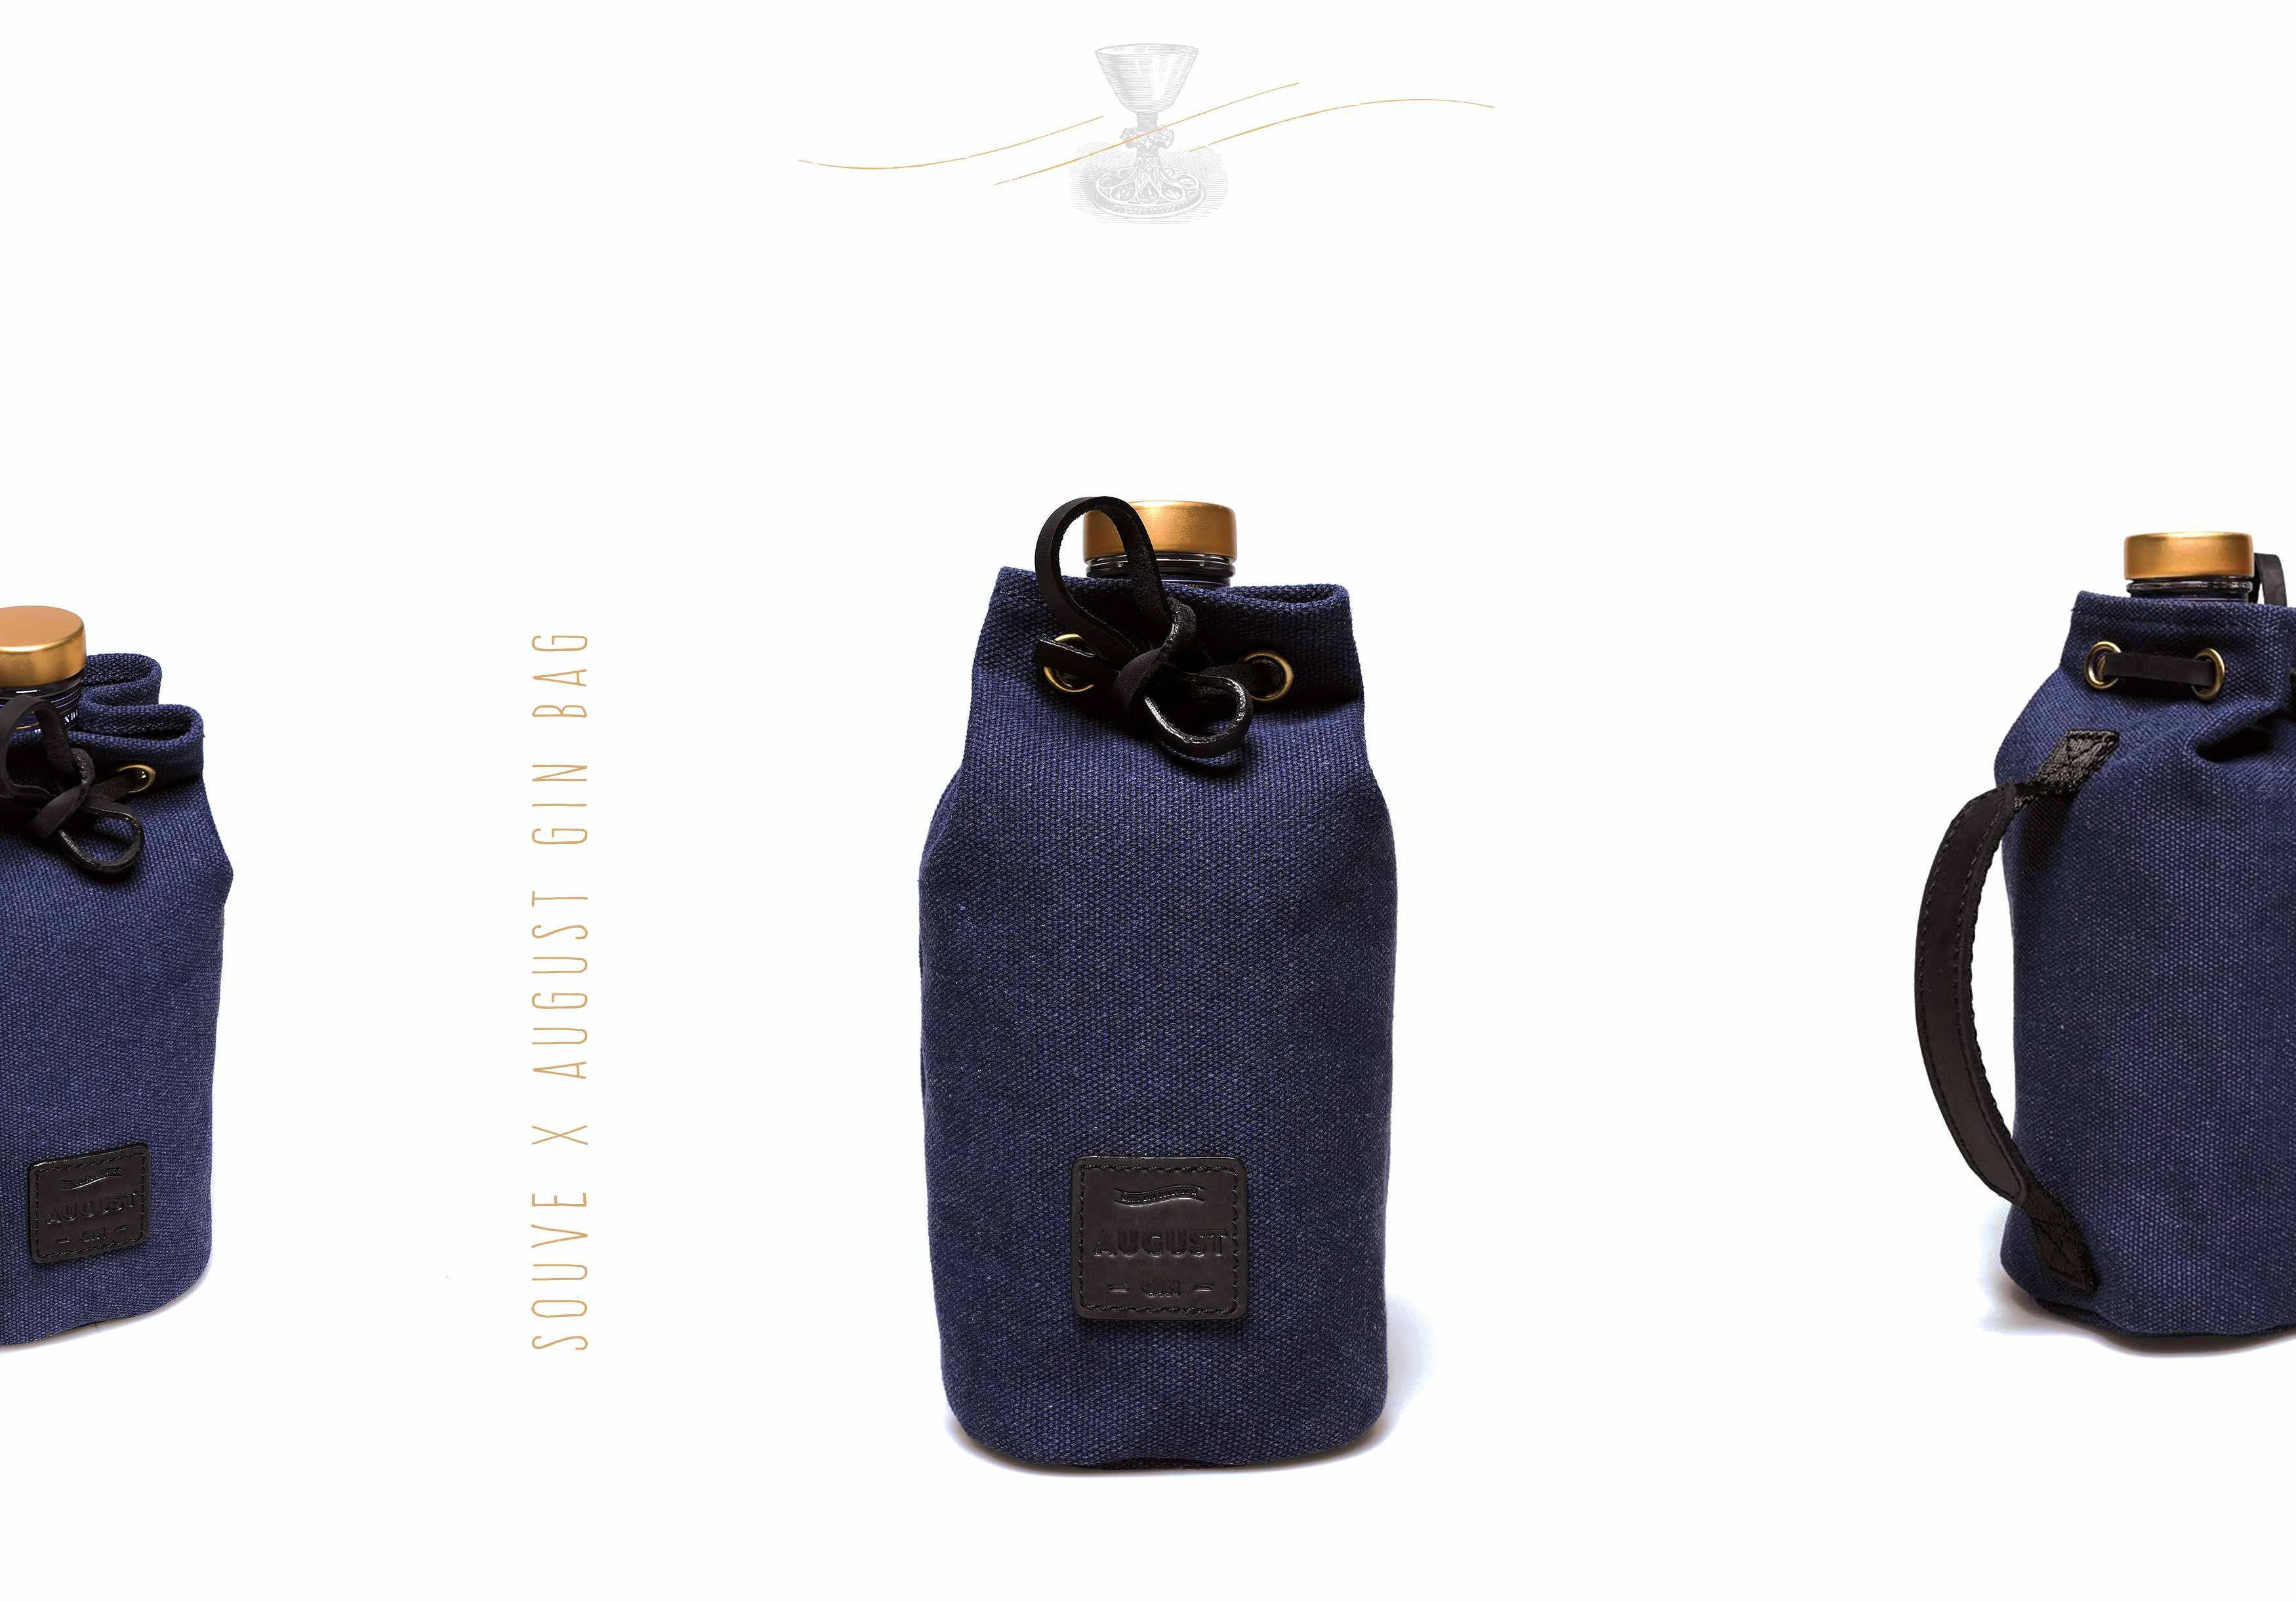 10-souve-bags-august-gin-augsburg-design-branding